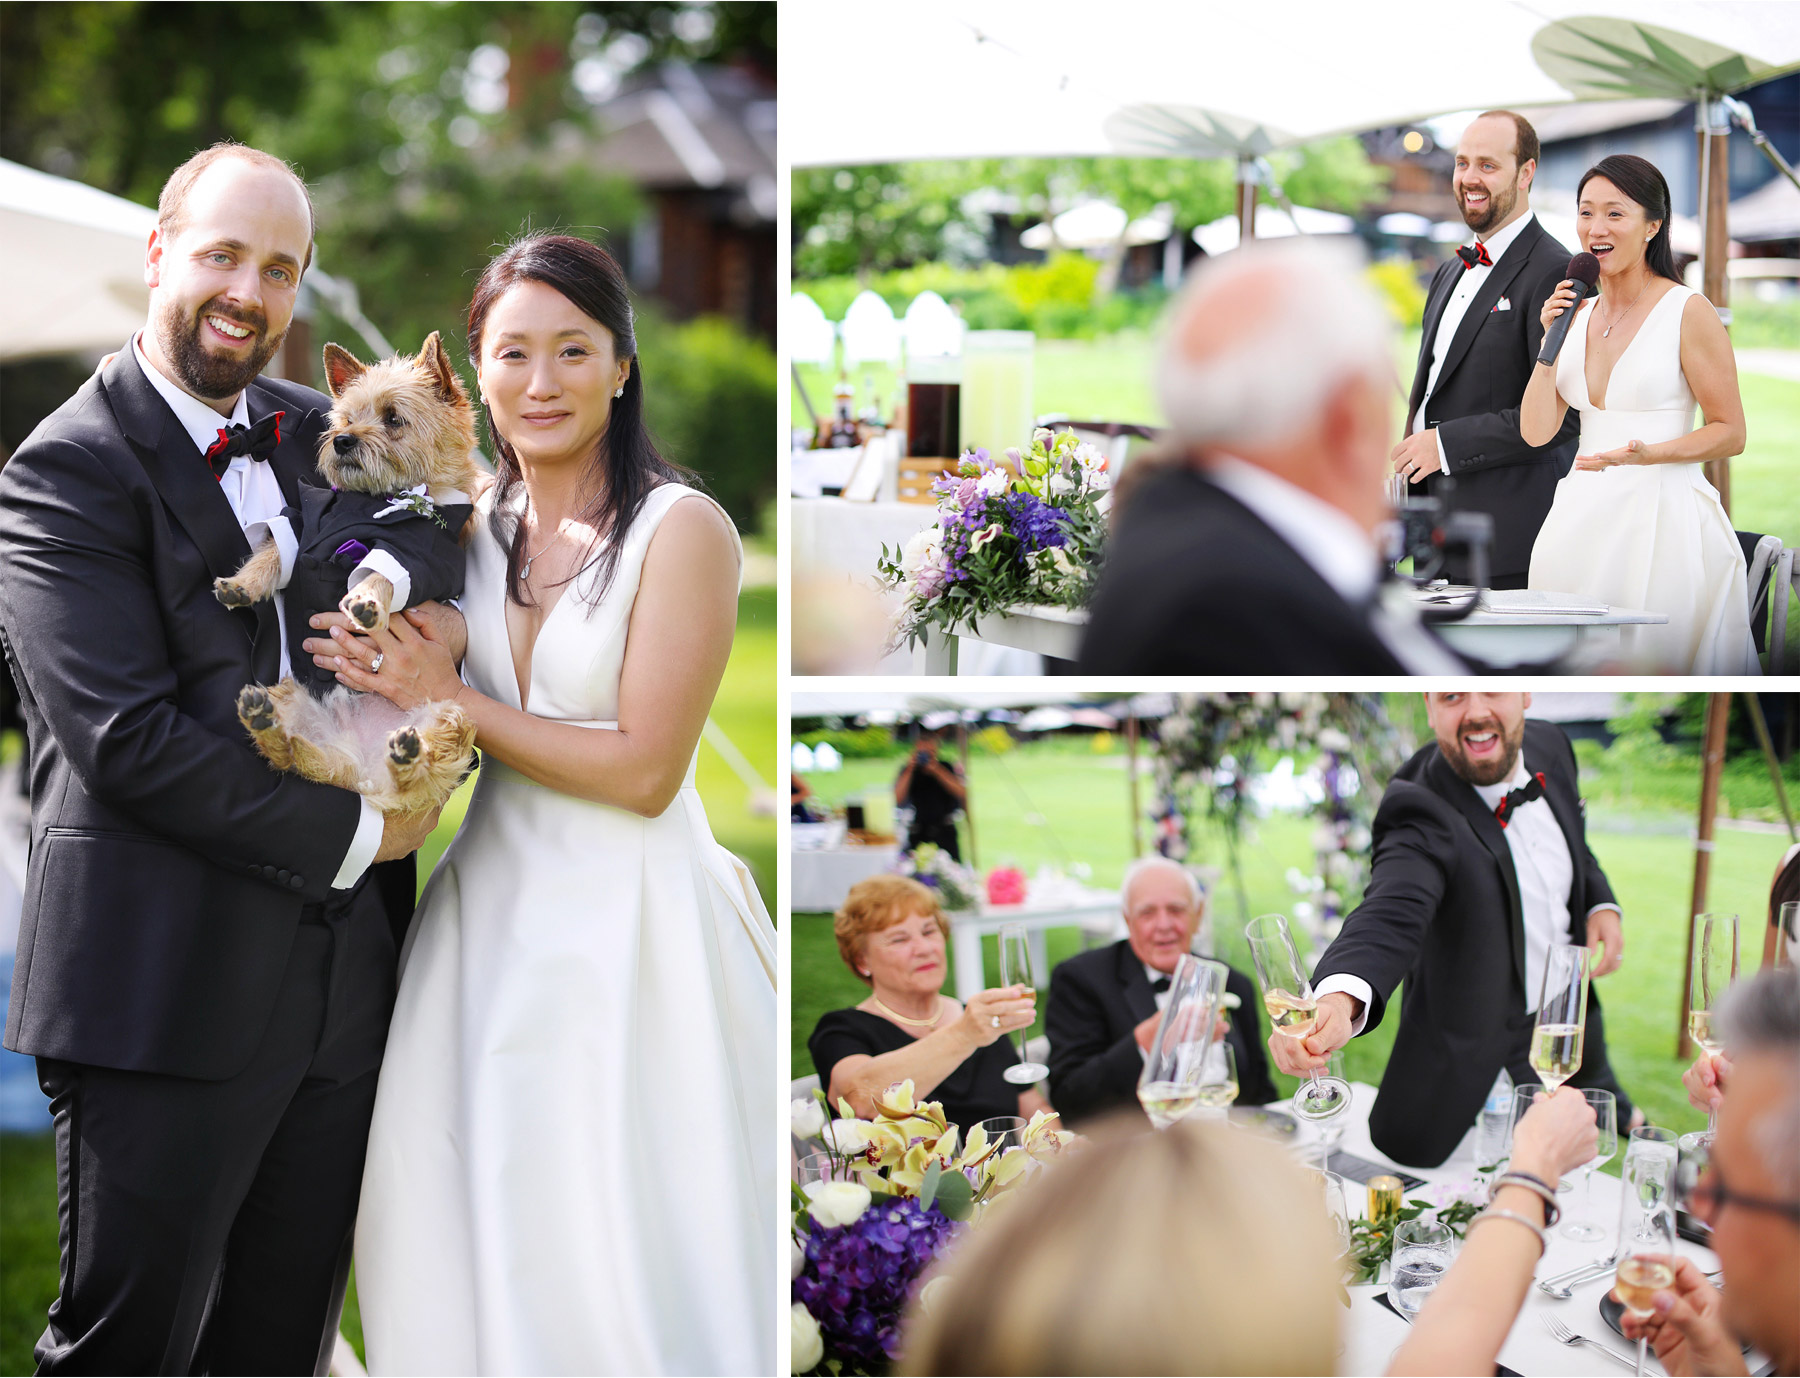 17-Vick-Photography-Wedding-Stouts-Island-Lodge-Wisconsin-Summer-Reception-Outdoor-Toast-Dog-MiJa-and-Lucius.jpg